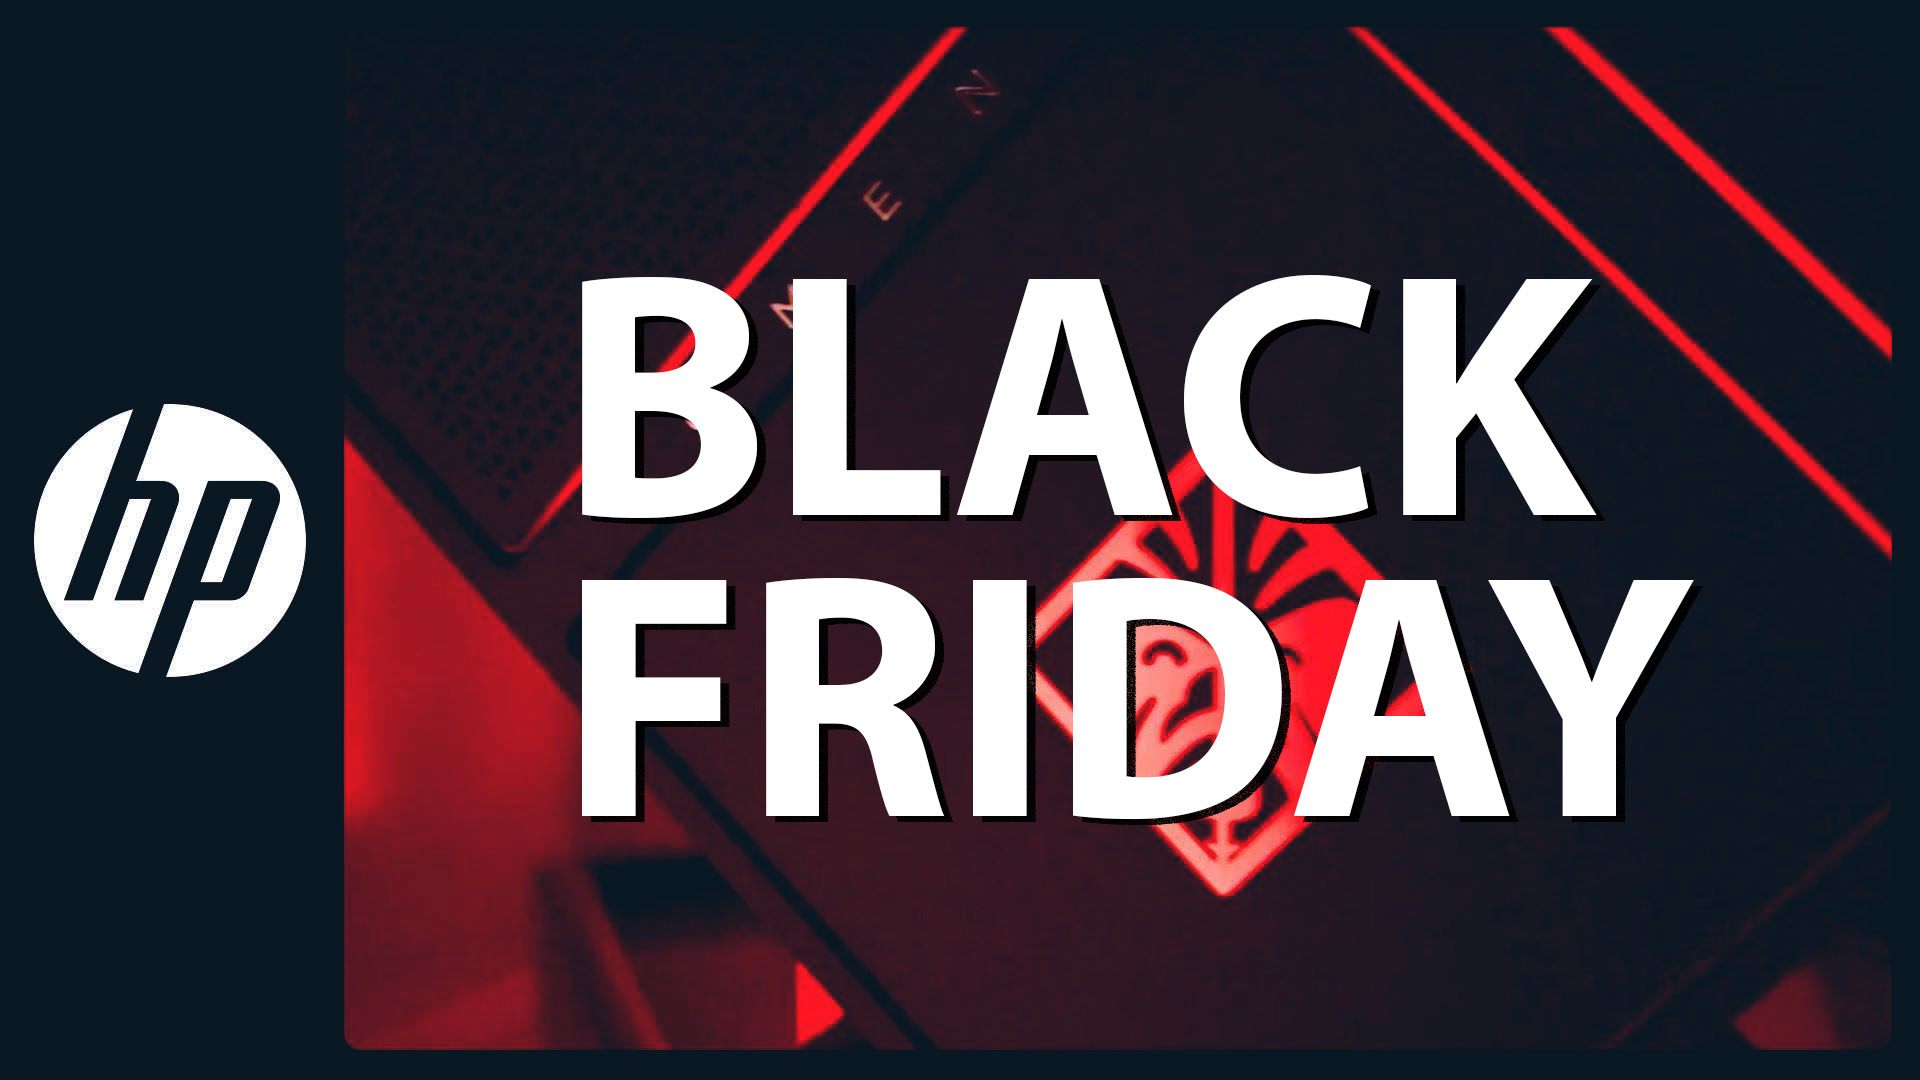 Black Friday Specials Hp S Massive Black Friday Sale Is Now Live Insane Deals With Up